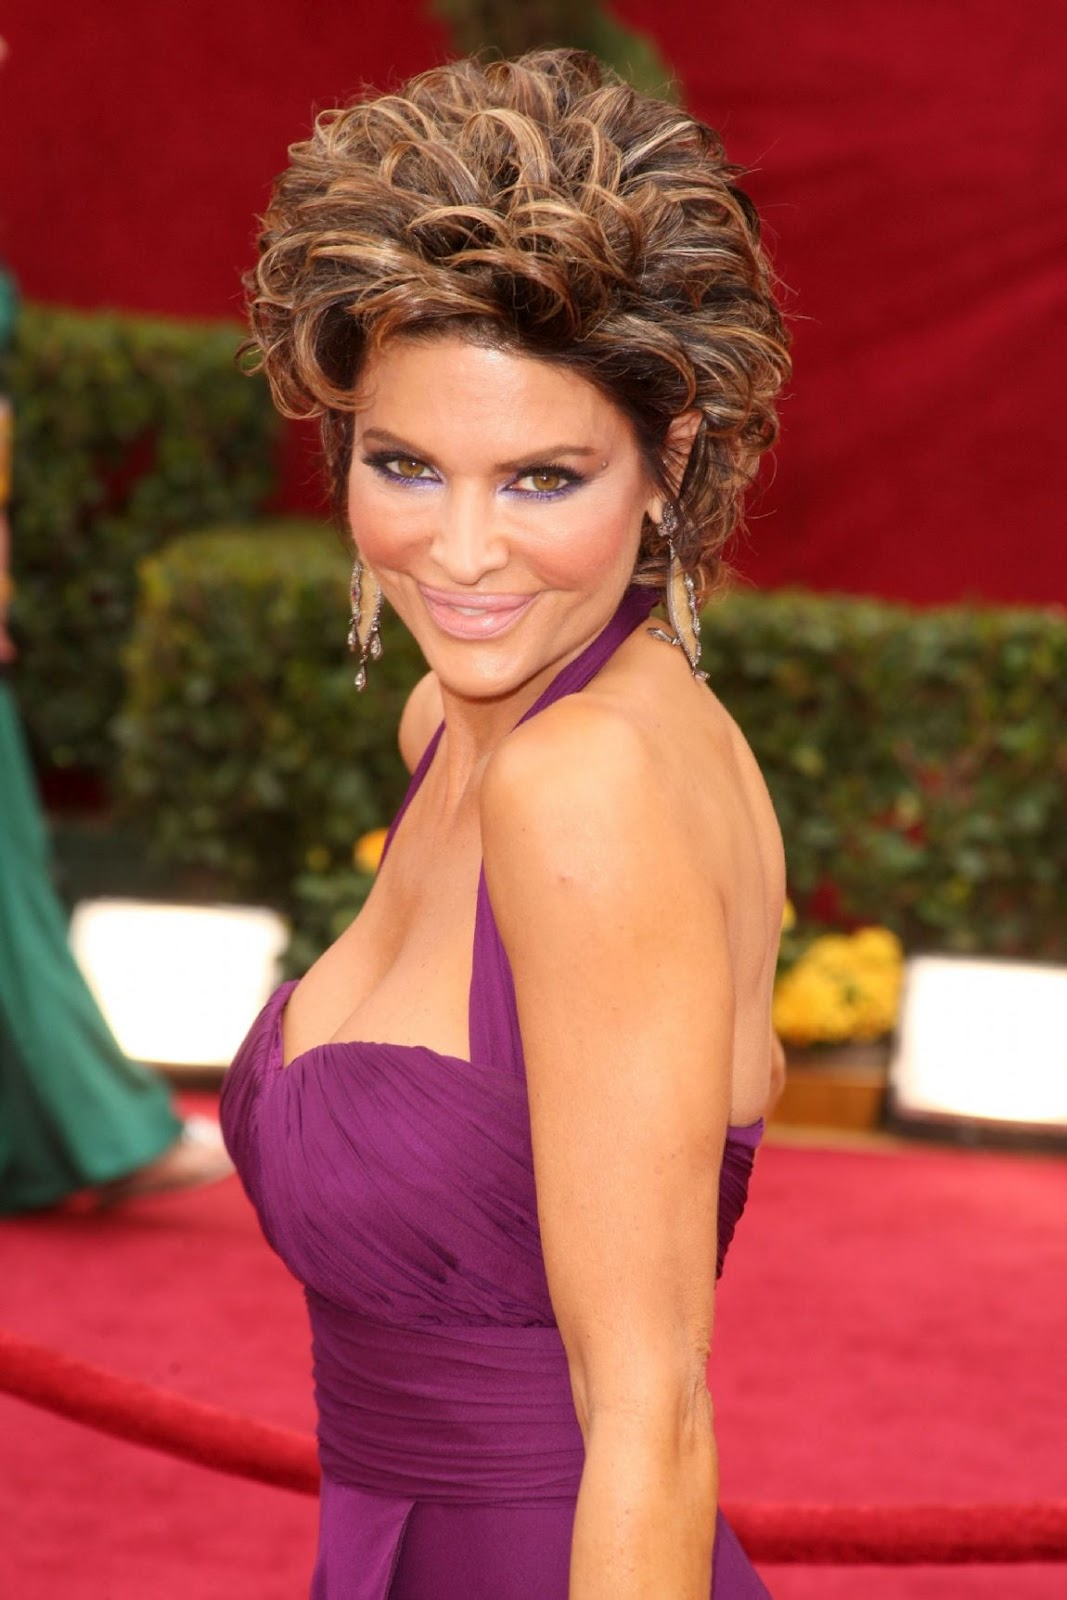 hairstyle pictures lisa rinna hairstyle pictures lisa rinna hairstyle title=